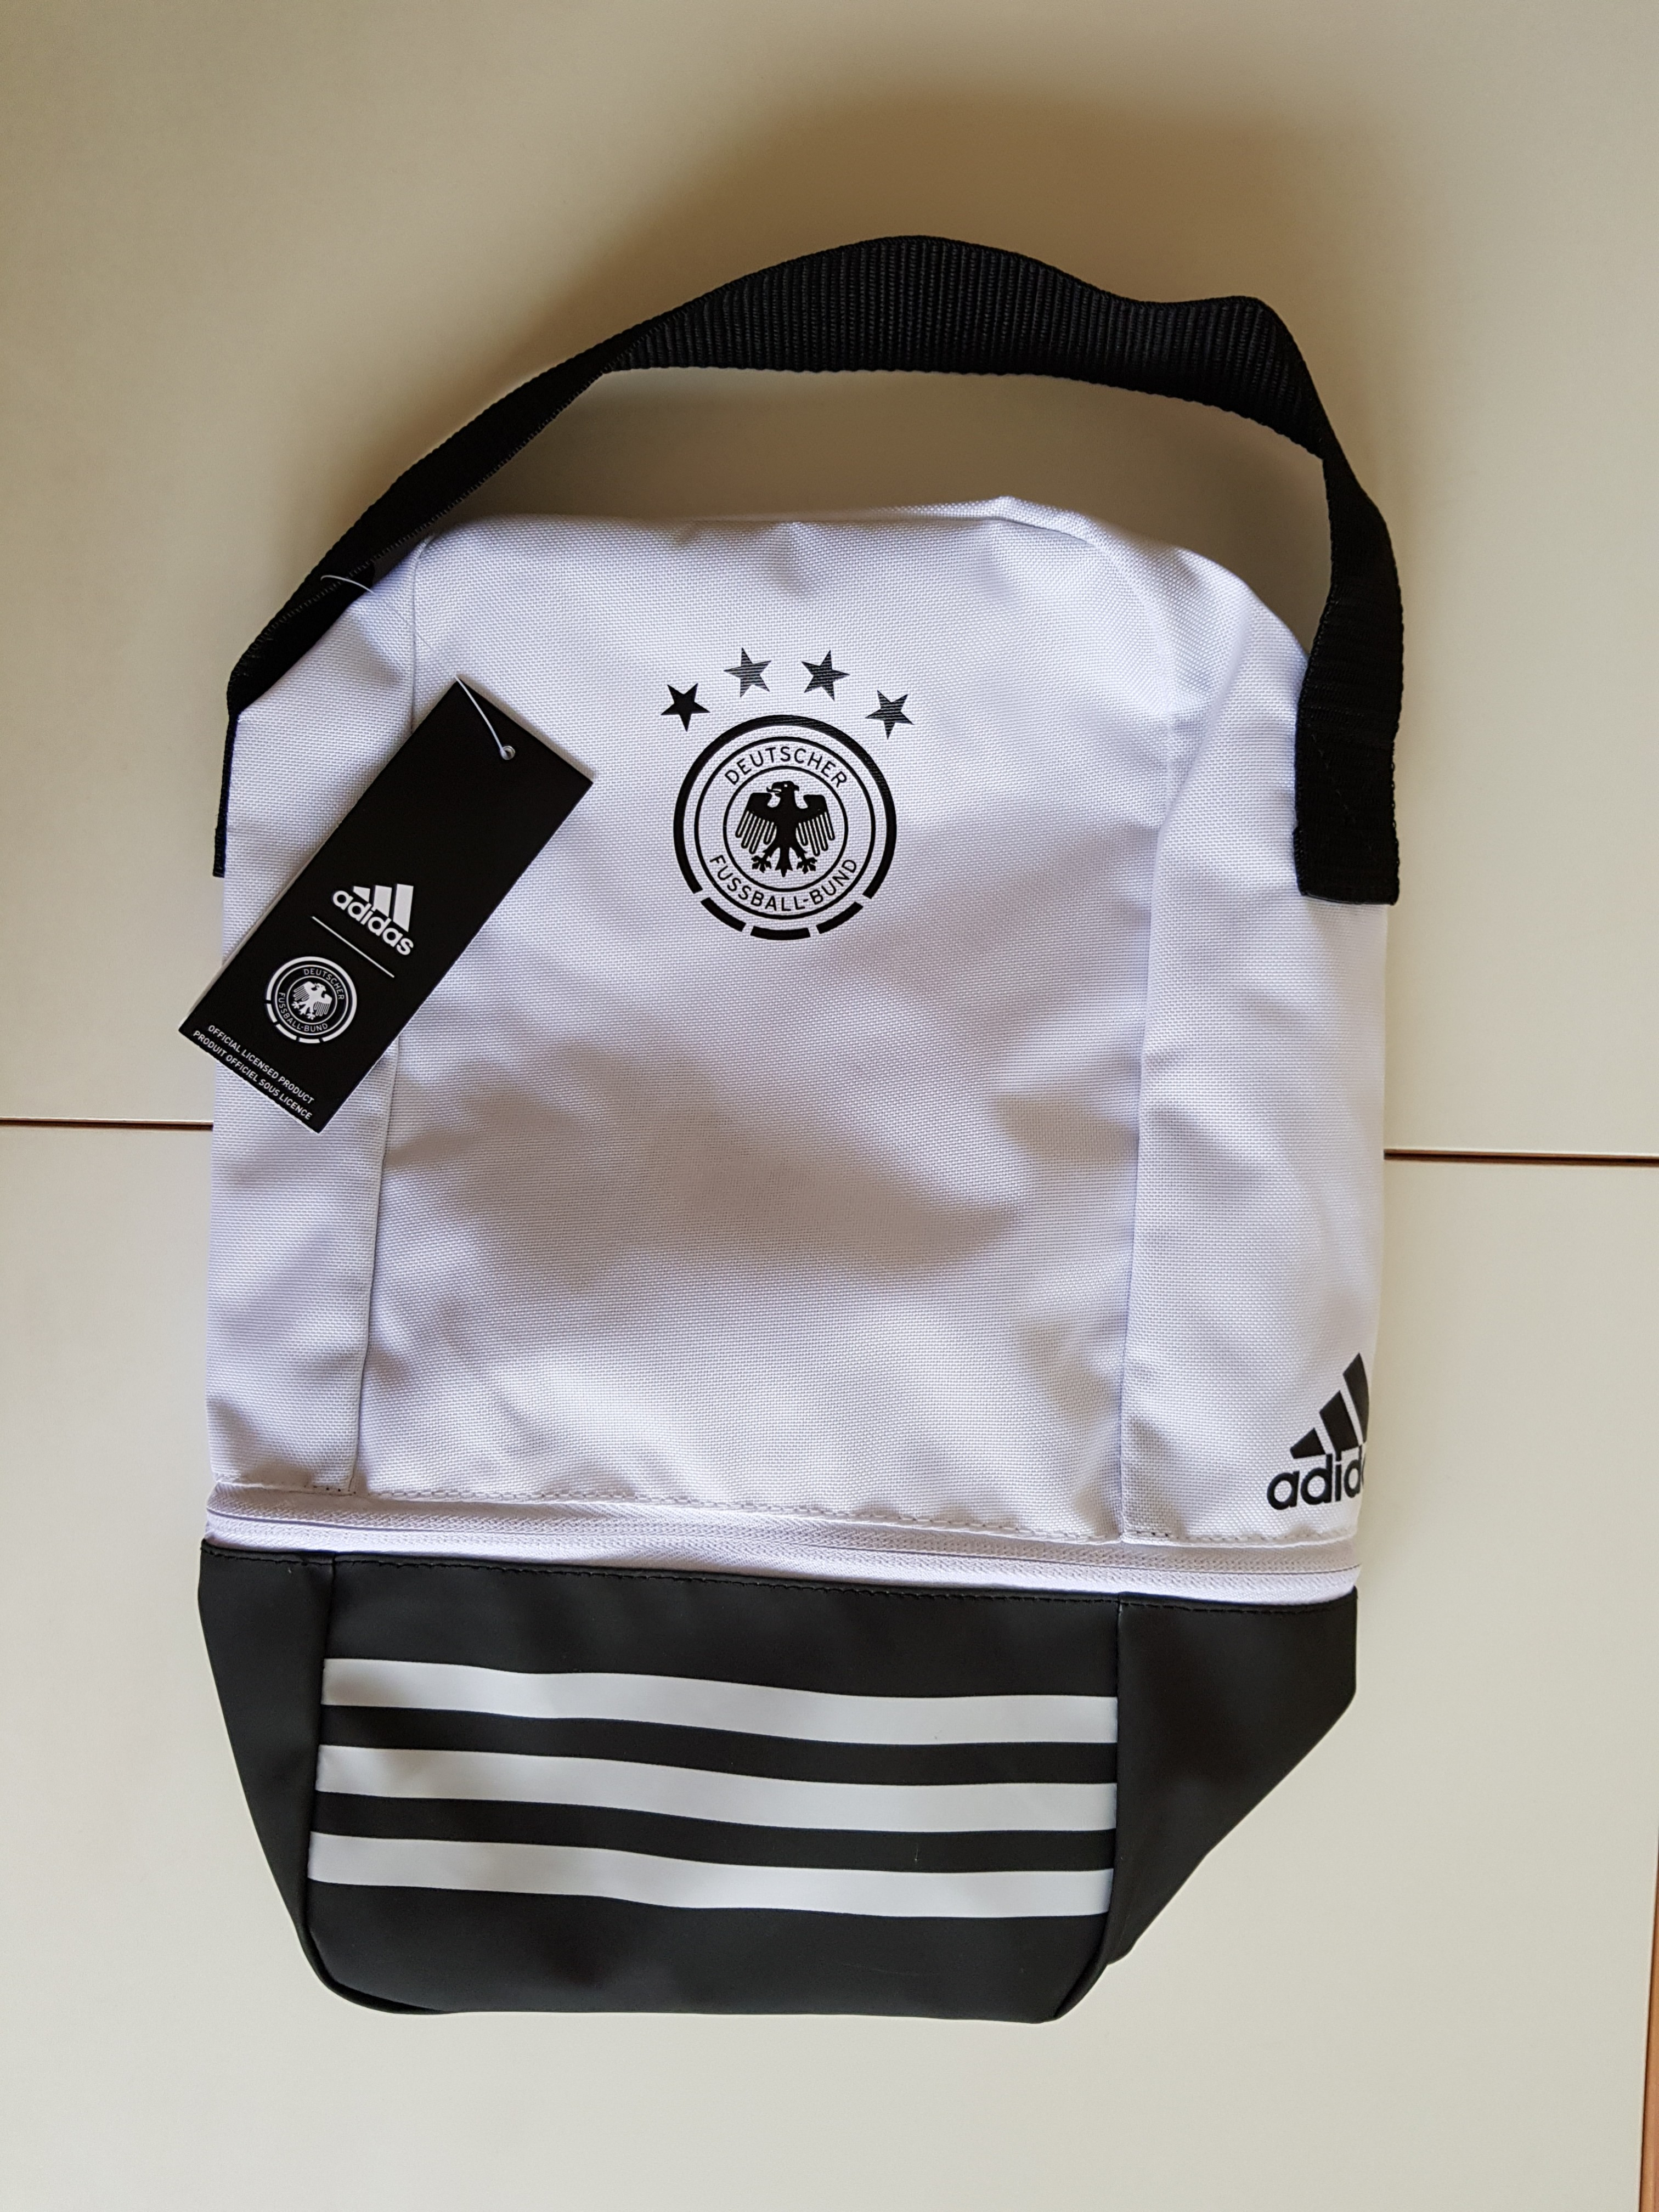 0ceacd3855 Adidas DFB shoebag, Sports, Sports Apparel on Carousell